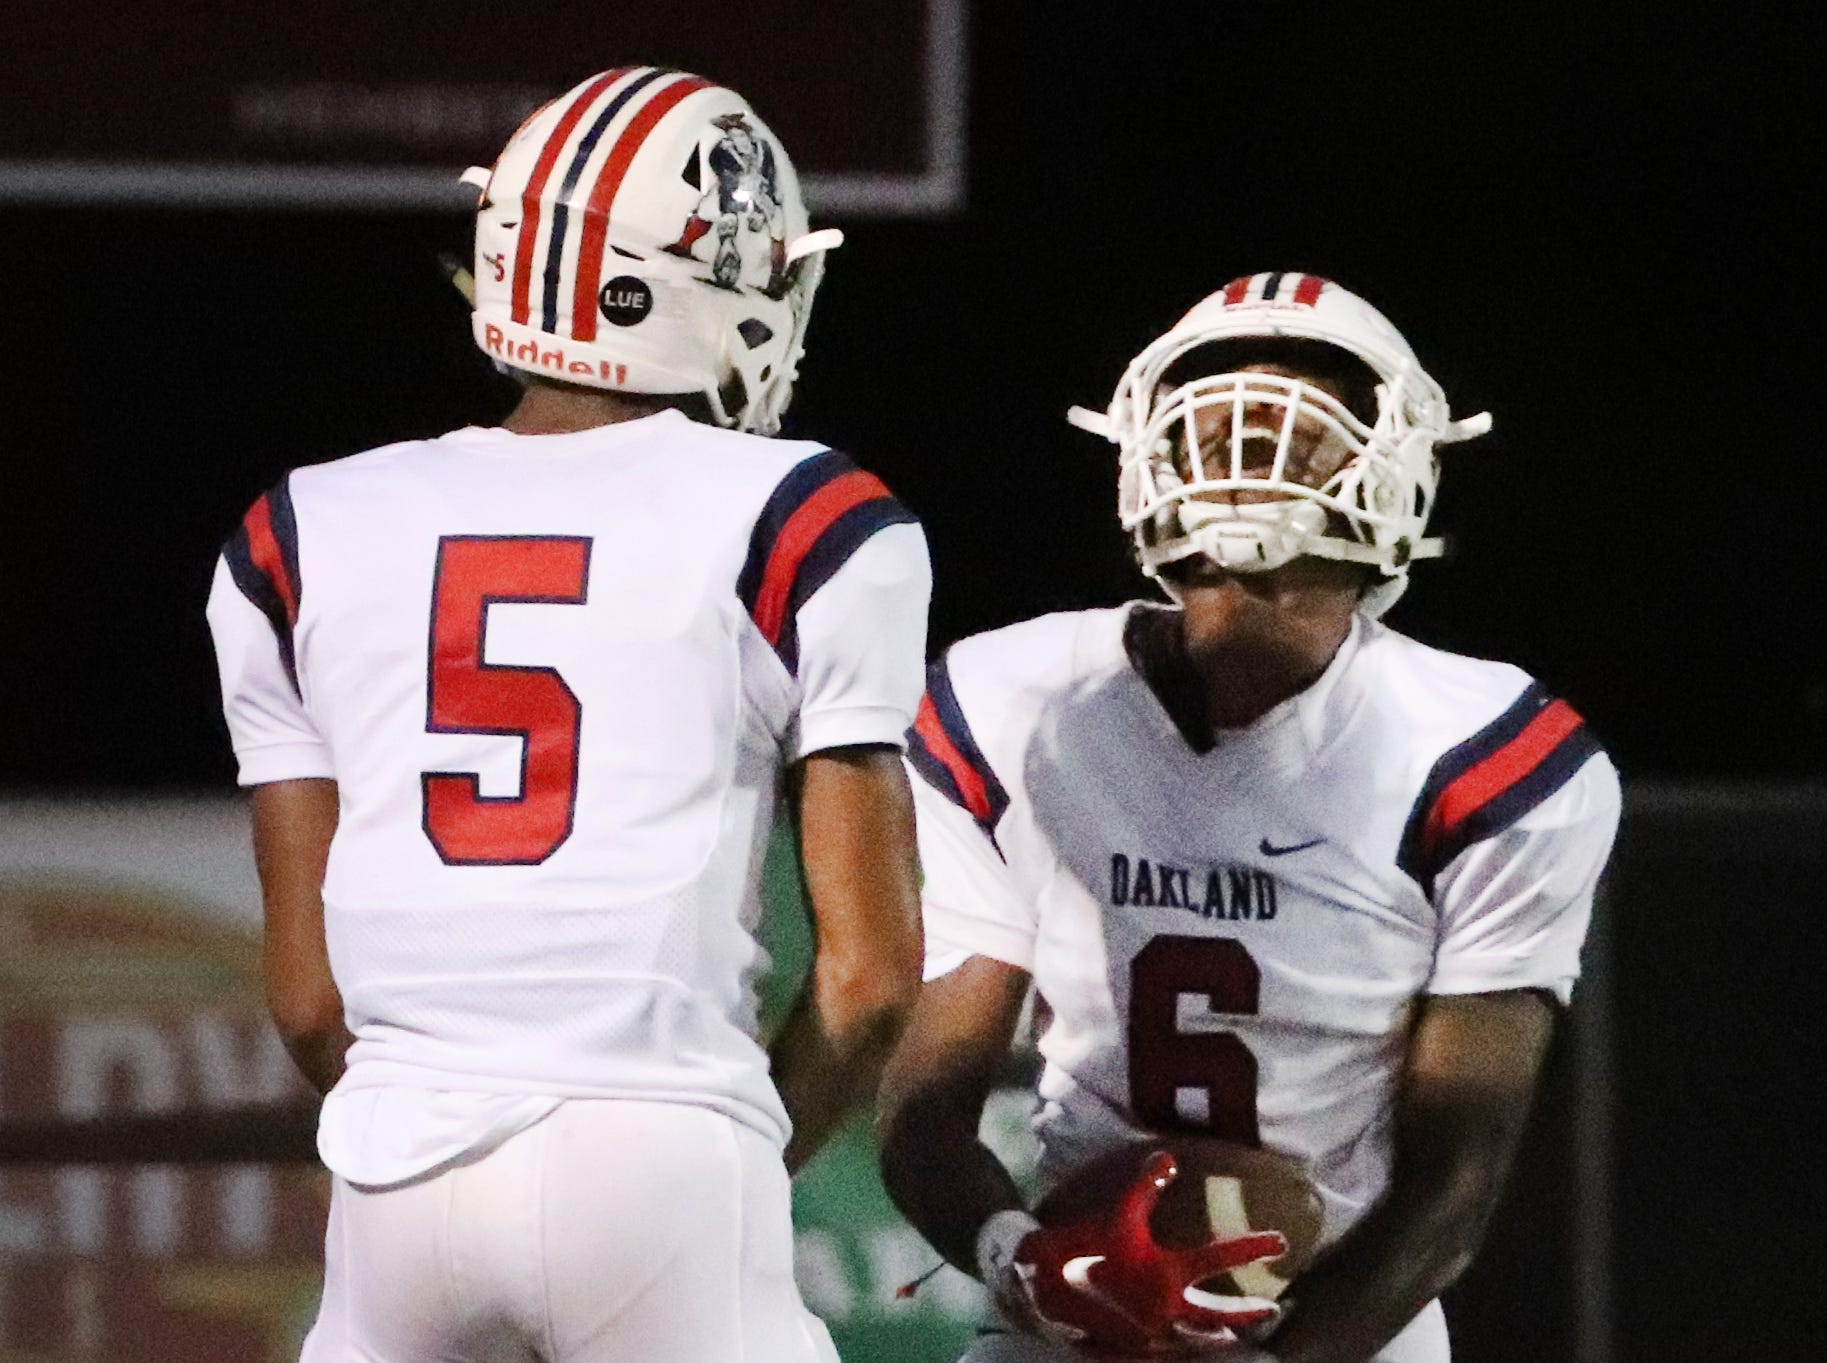 Oakland's Justin Jefferson (6) celebrates his touchdown against Riverdale with Woodi Washington (5) at Riverdale during the Battle of the Boro on Friday, Sept. 14, 2018.